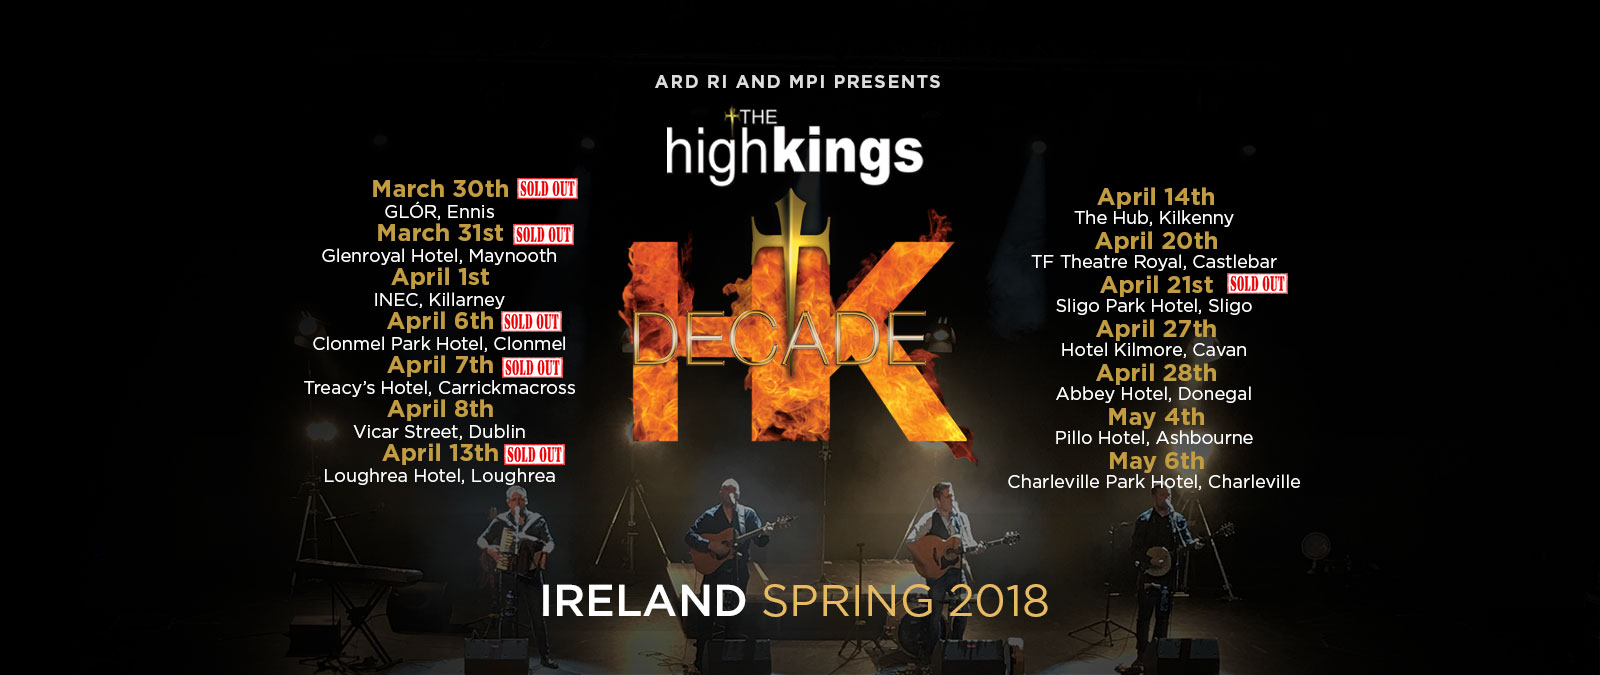 the high kings sold out in sligo park hotel